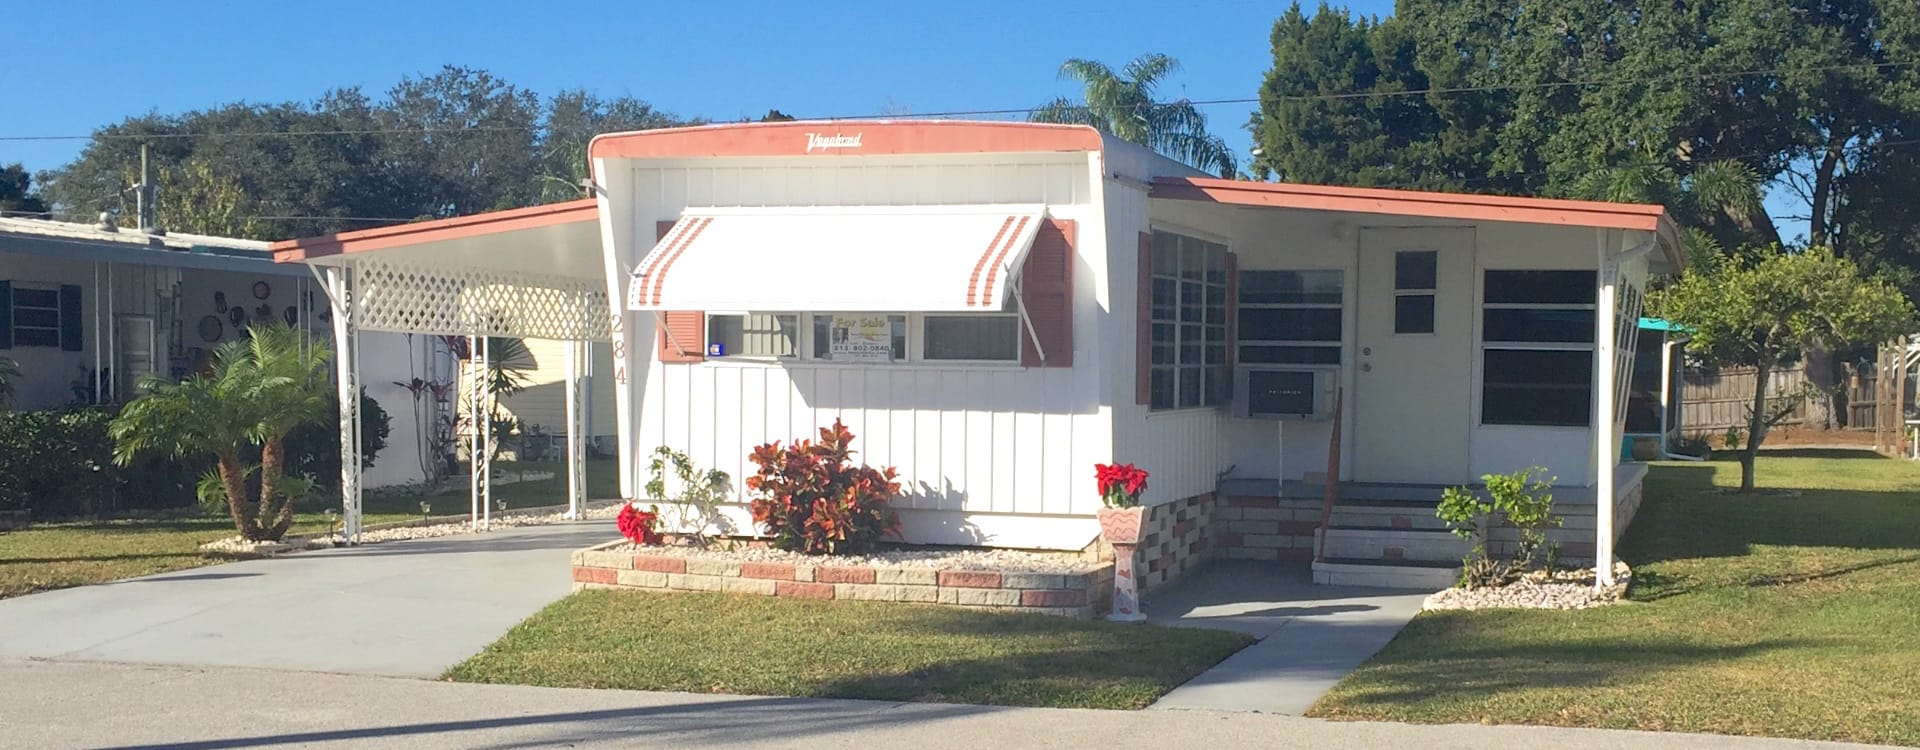 Boulevard Mobile Home Park Clearwater Fl